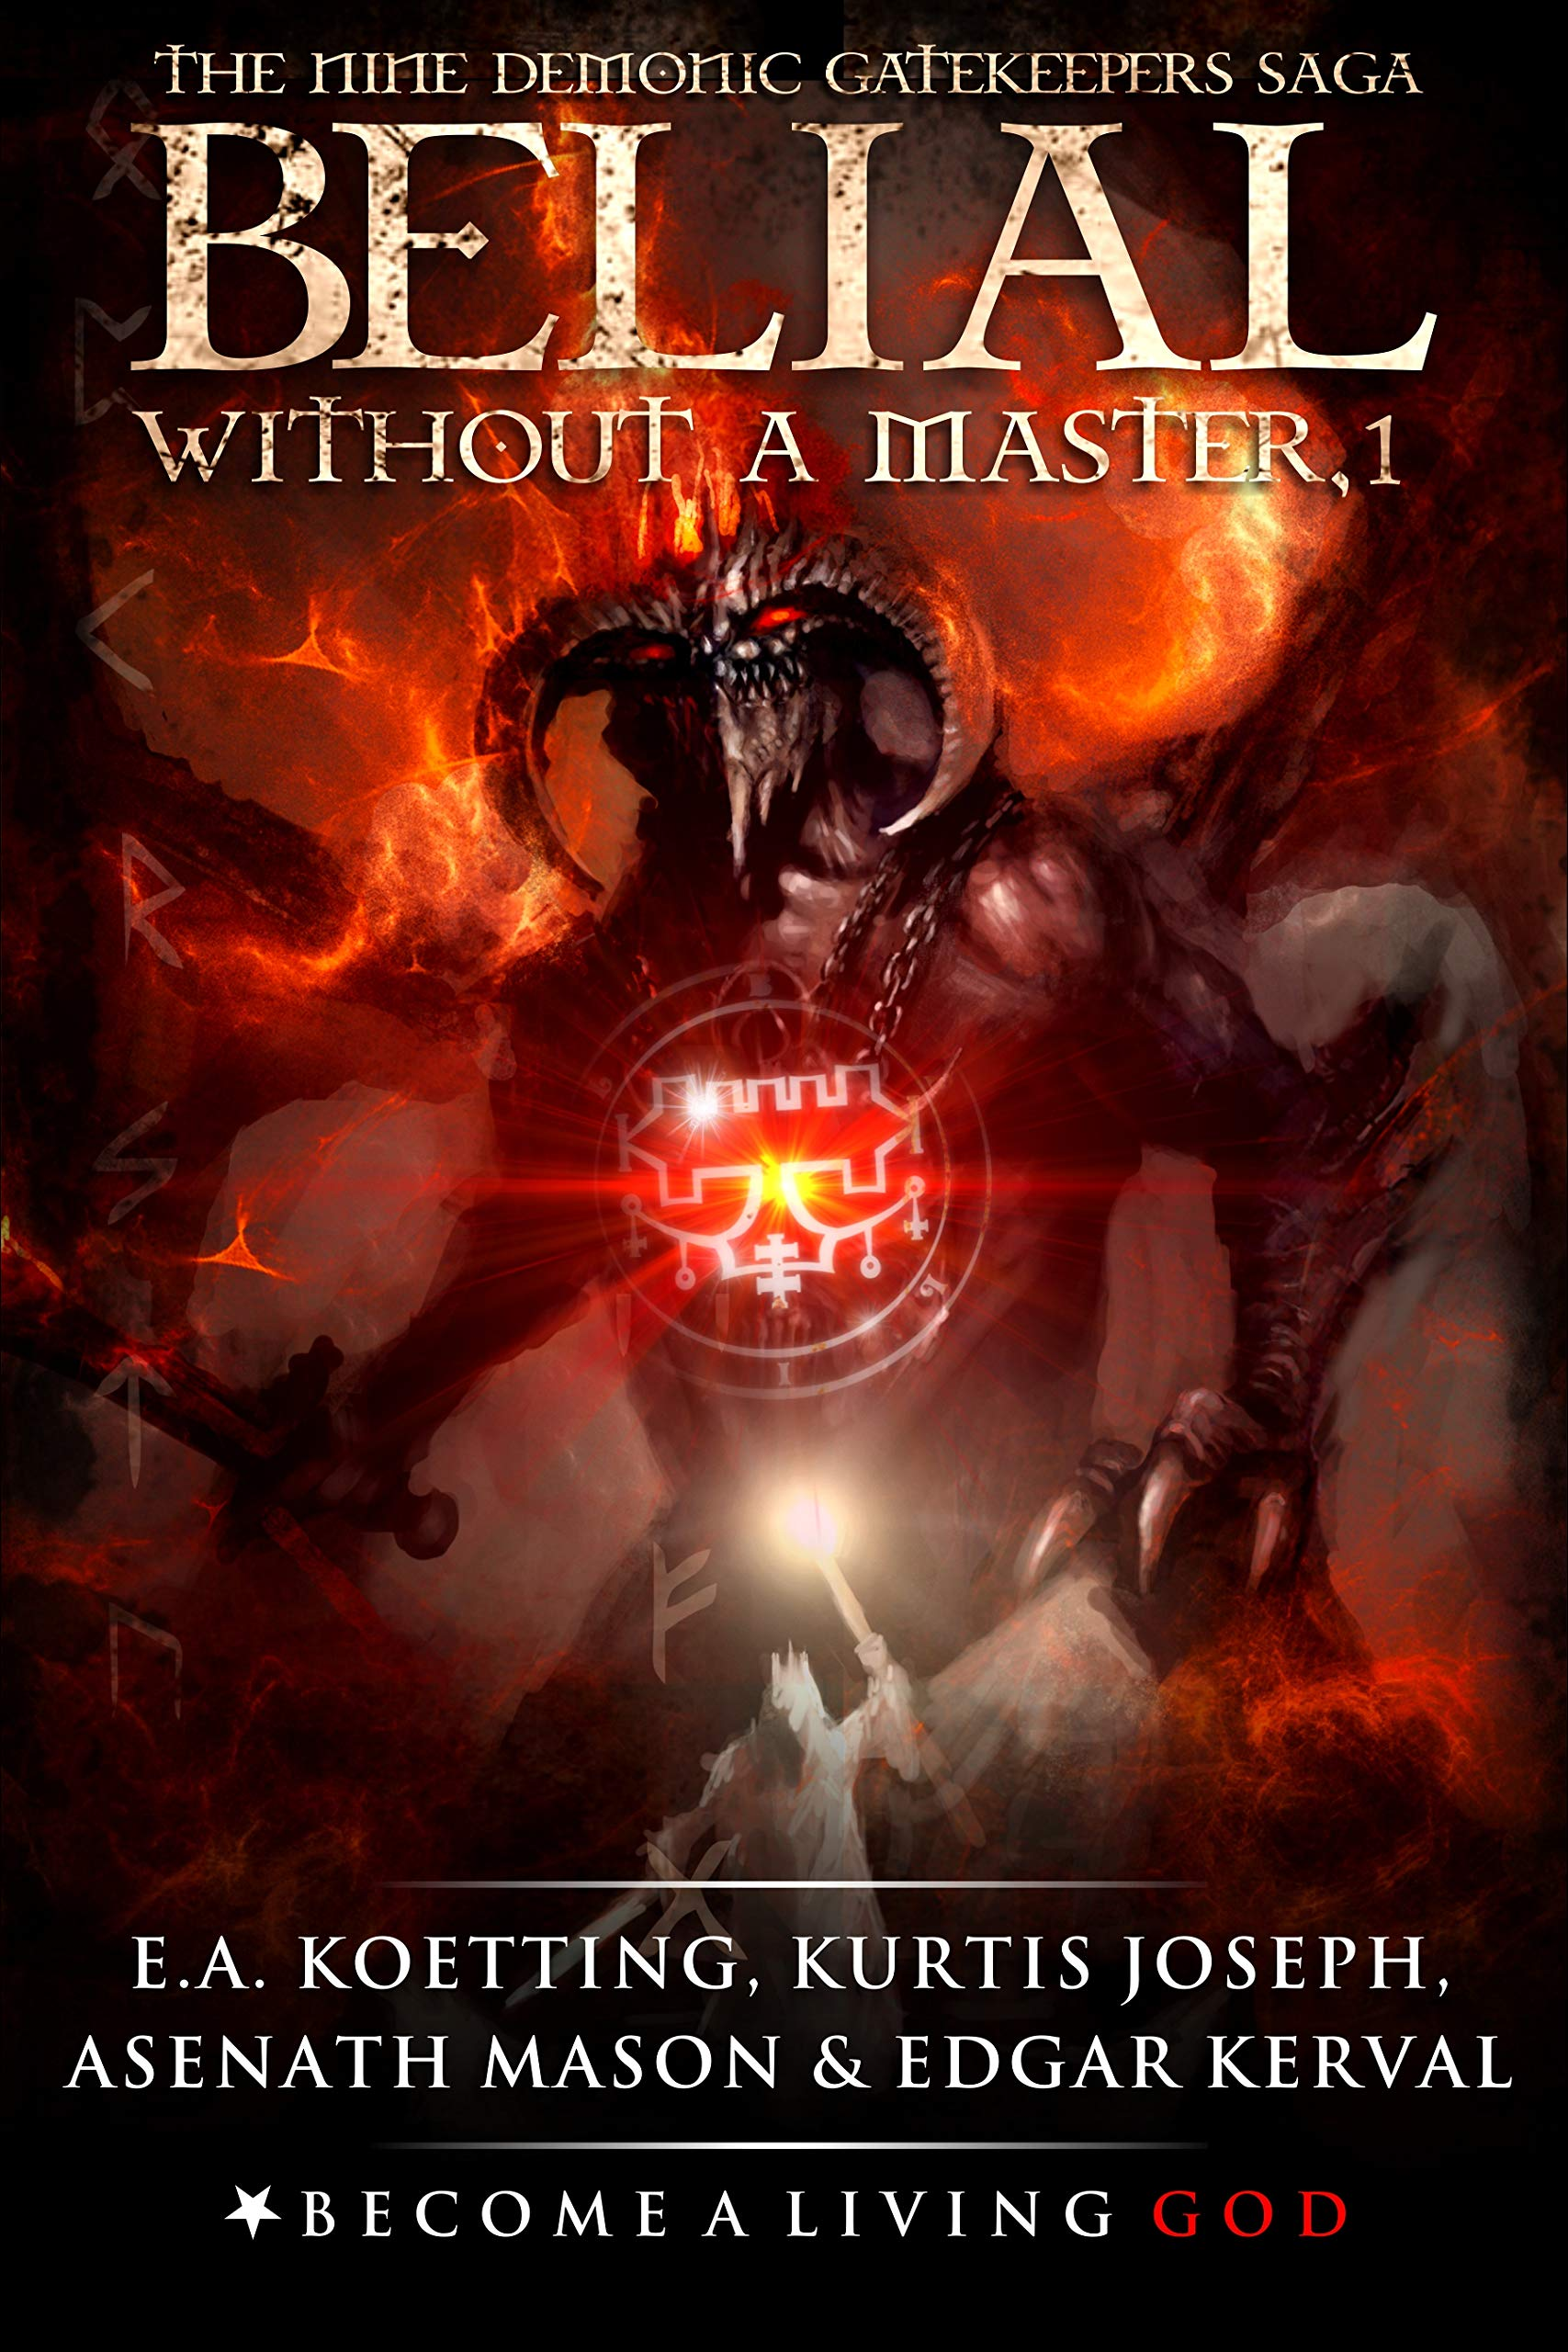 BELIAL  Without A Master  The Nine Demonic Gatekeepers Saga Book 1   English Edition